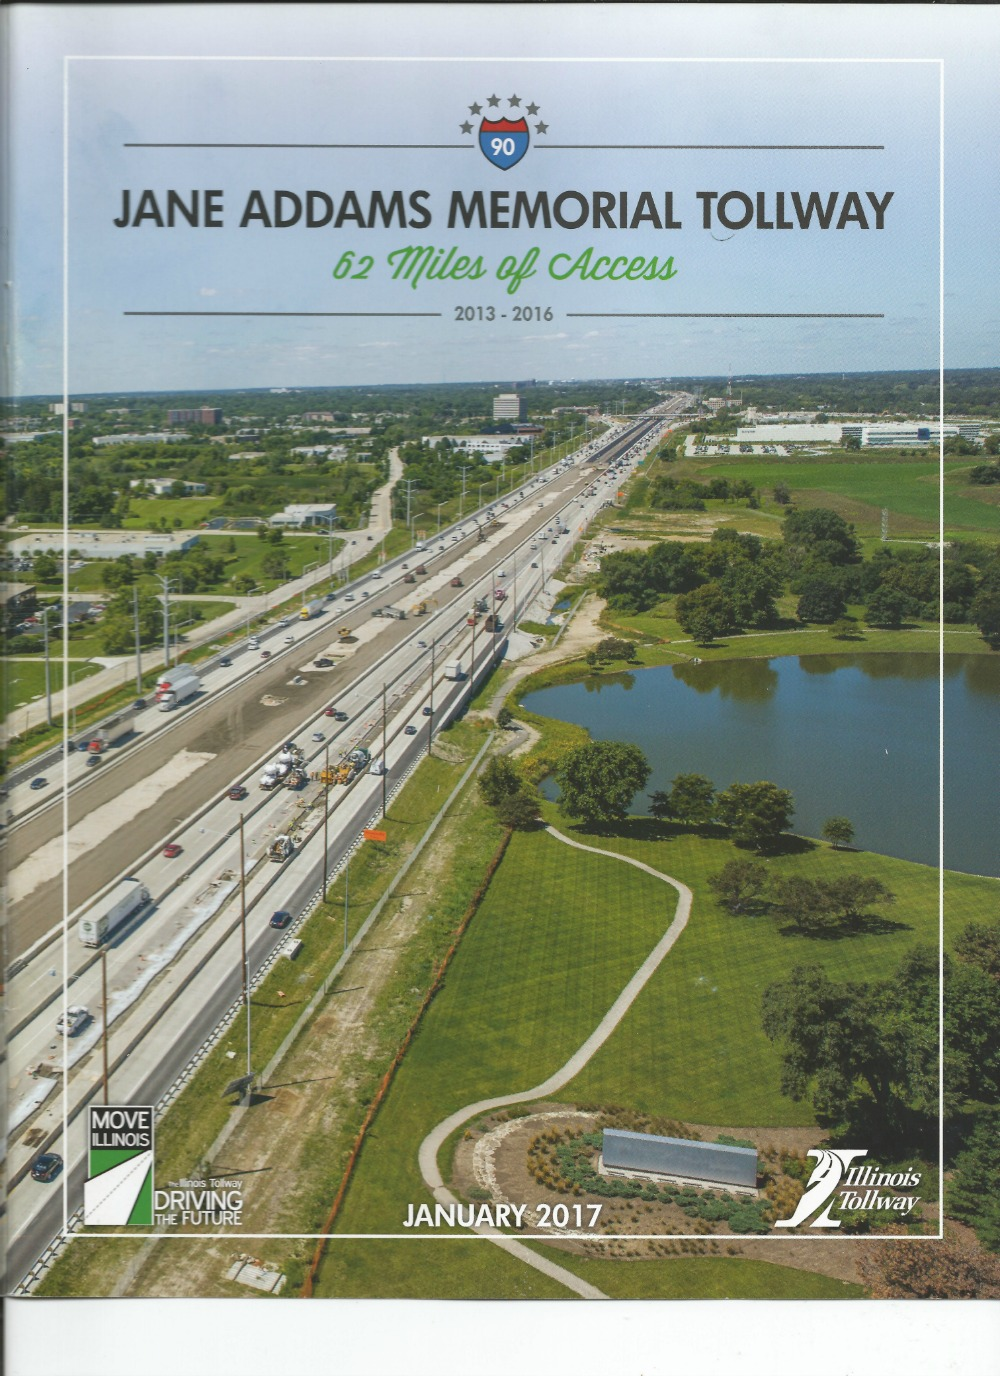 Jane Addams Memorial Tollway January 2017